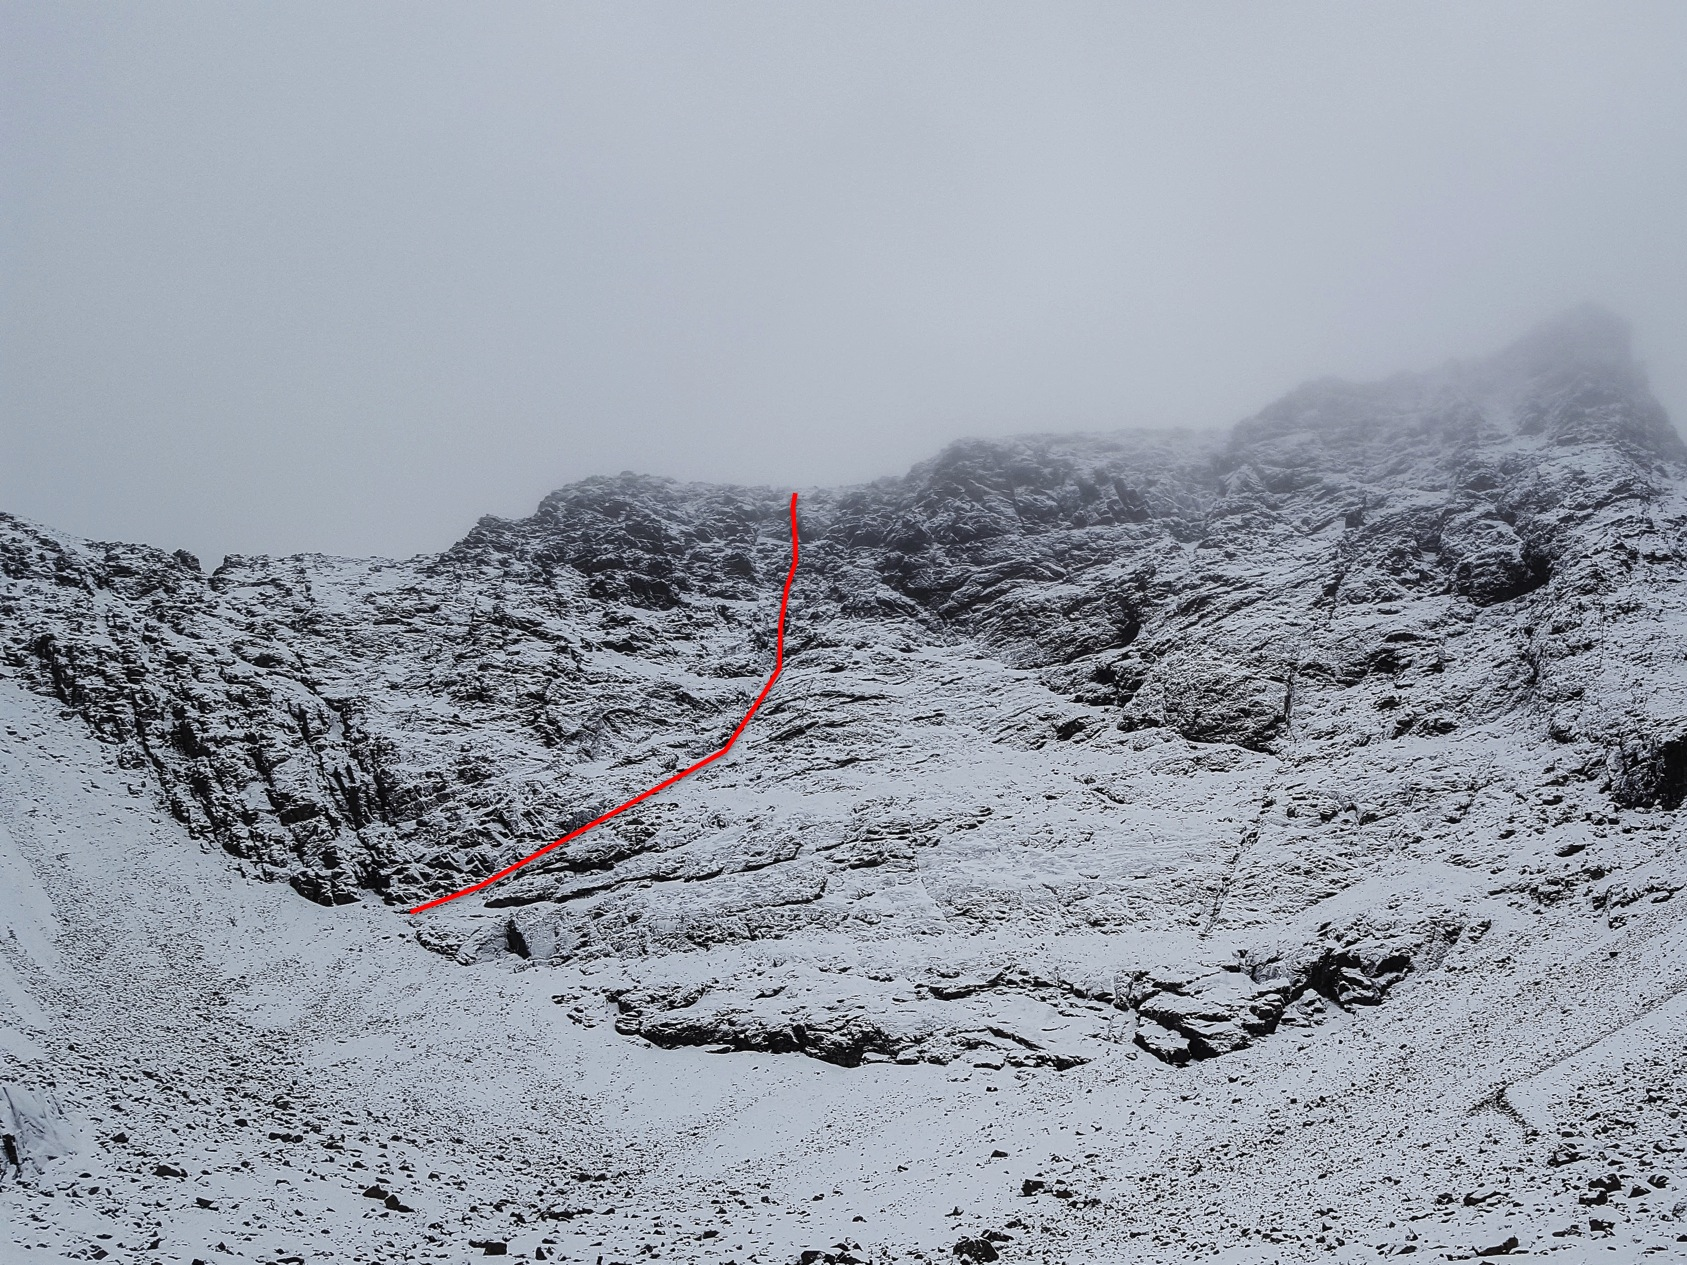 The line of Silver Fox (V,5) on the South Face of Sgurr Mhiccoinnich on Skye. This sustained five-pitch route follows a basalt dyke for most of its length. (Photo/Topo: Mike Lates)